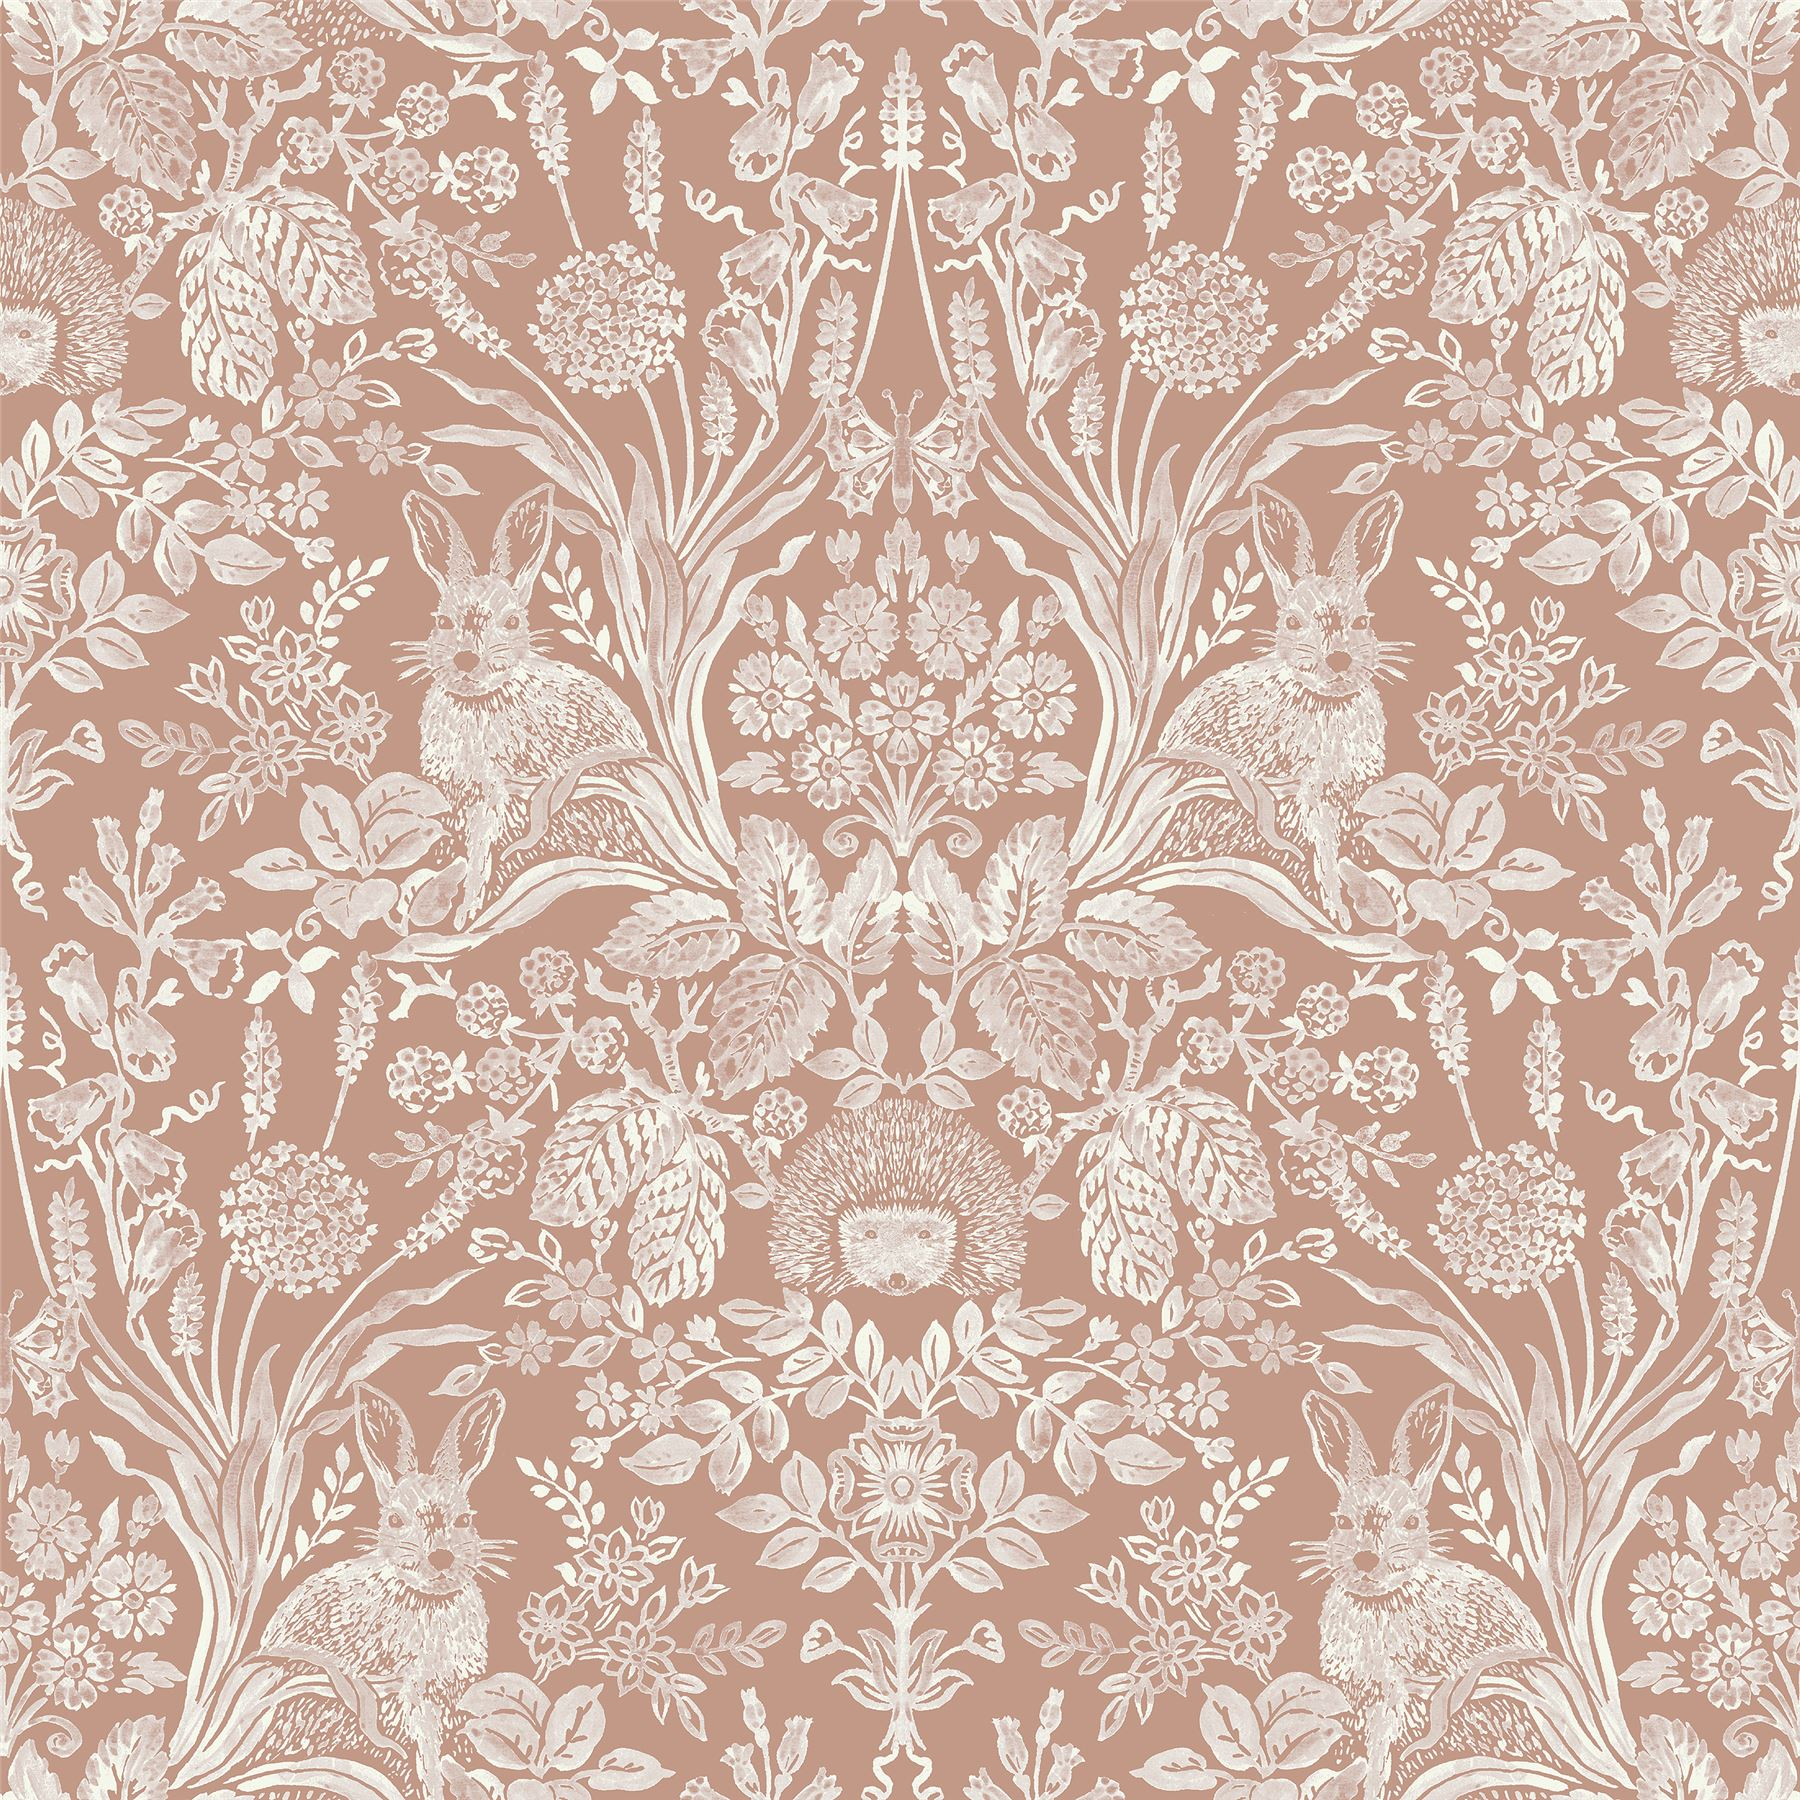 Details About Floral Animal Print Wallpaper Flowers Hedgehogs Rabbits Butterflies Rose Gold